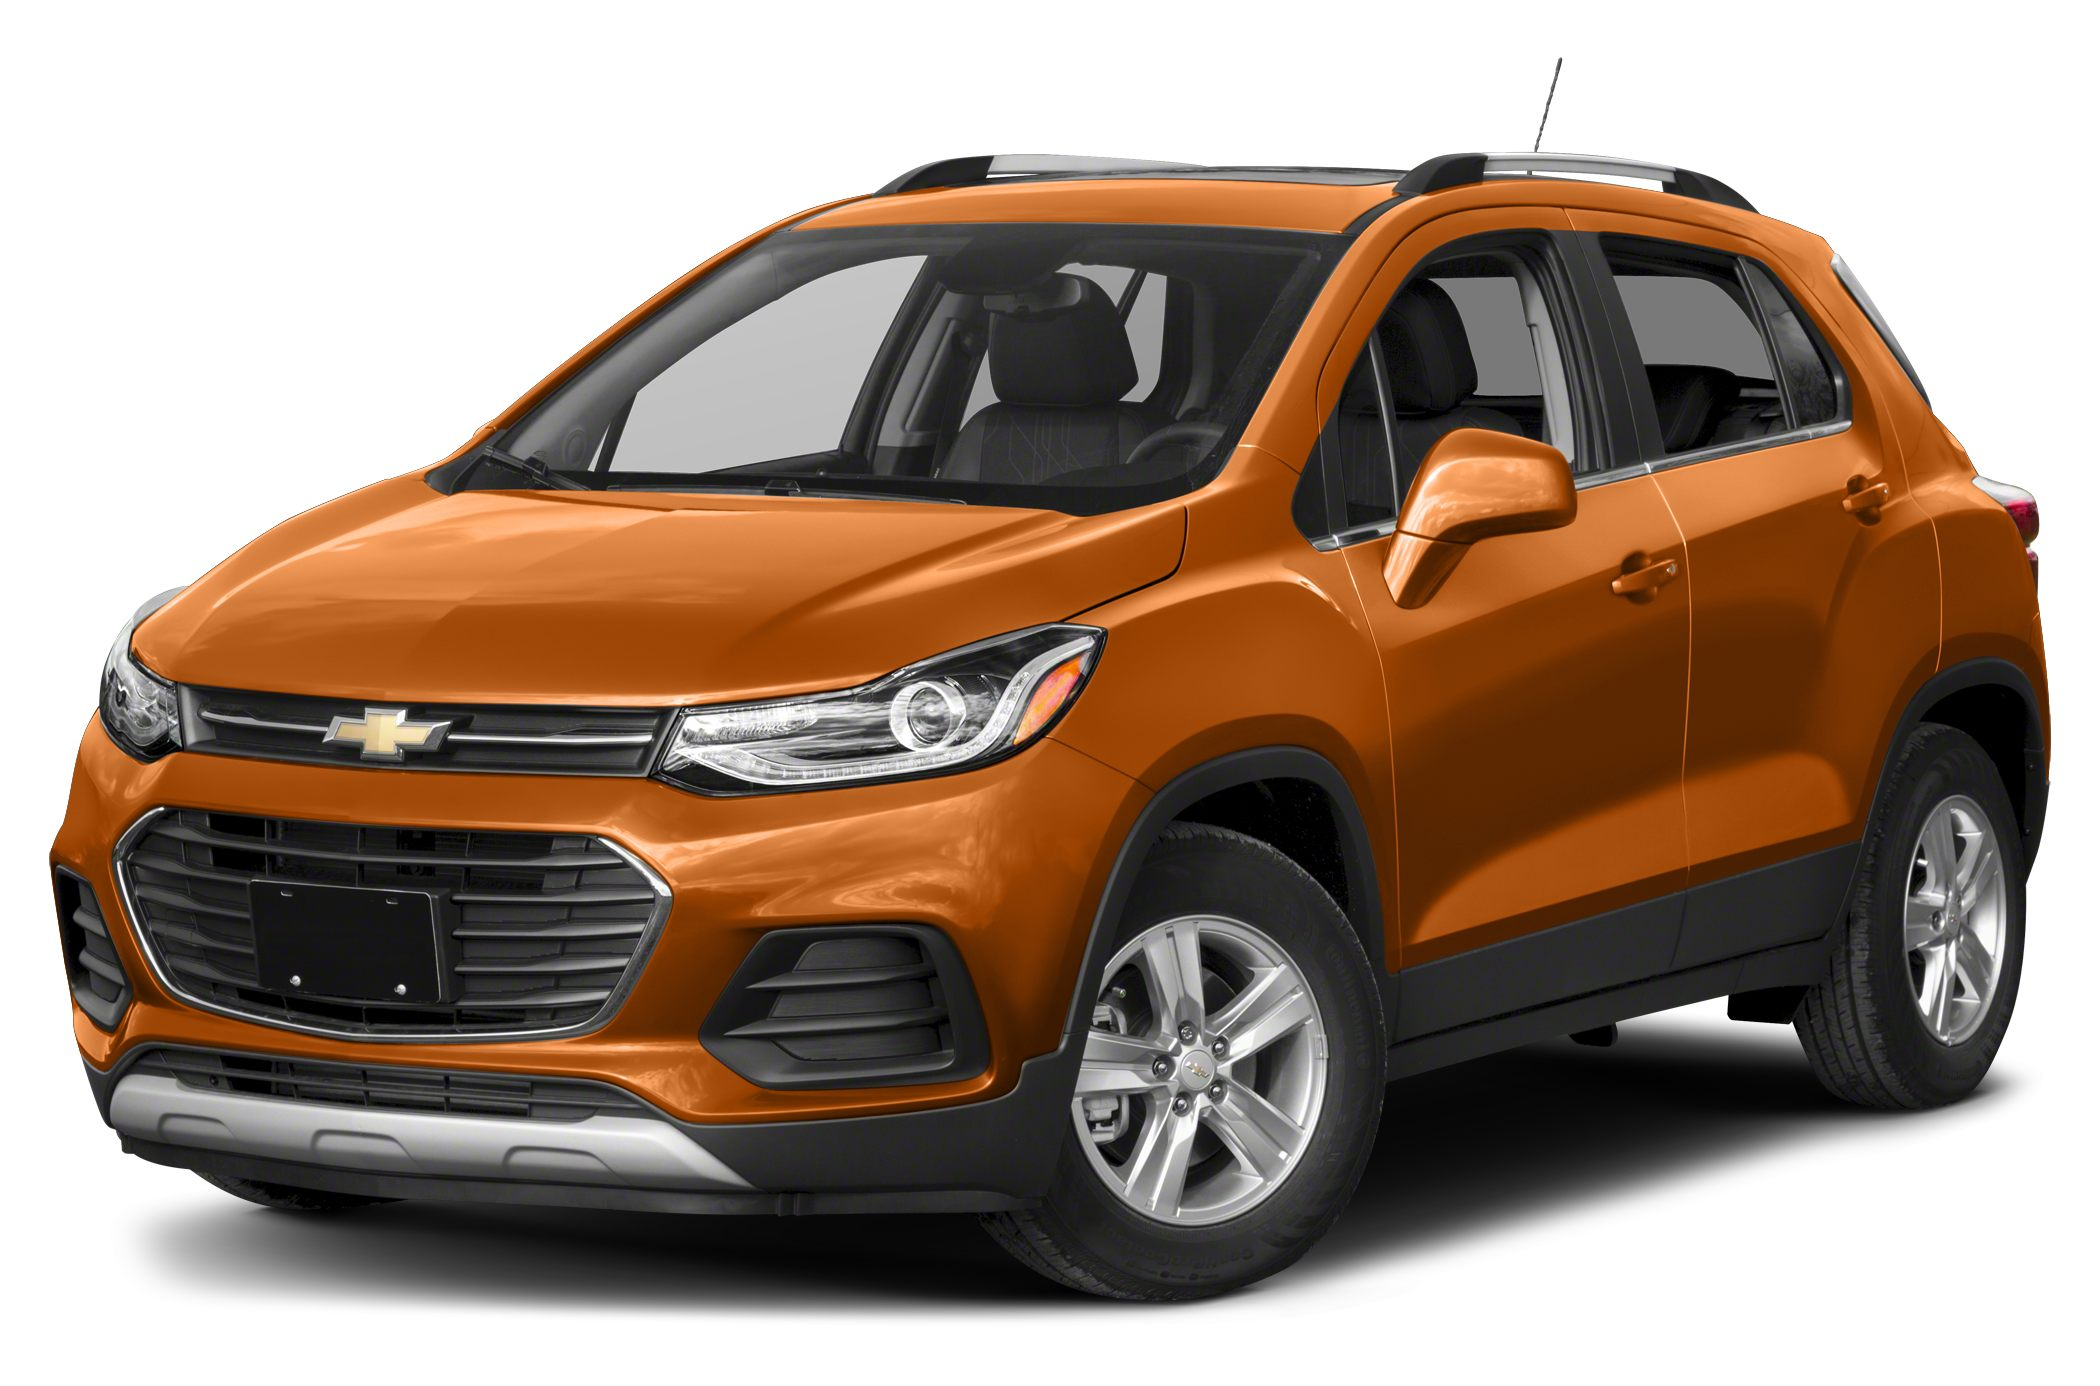 Used Cars In Denton Tx Best Of New and Used Chevrolet In Denton Tx with 2 000 Miles Priced $2 000